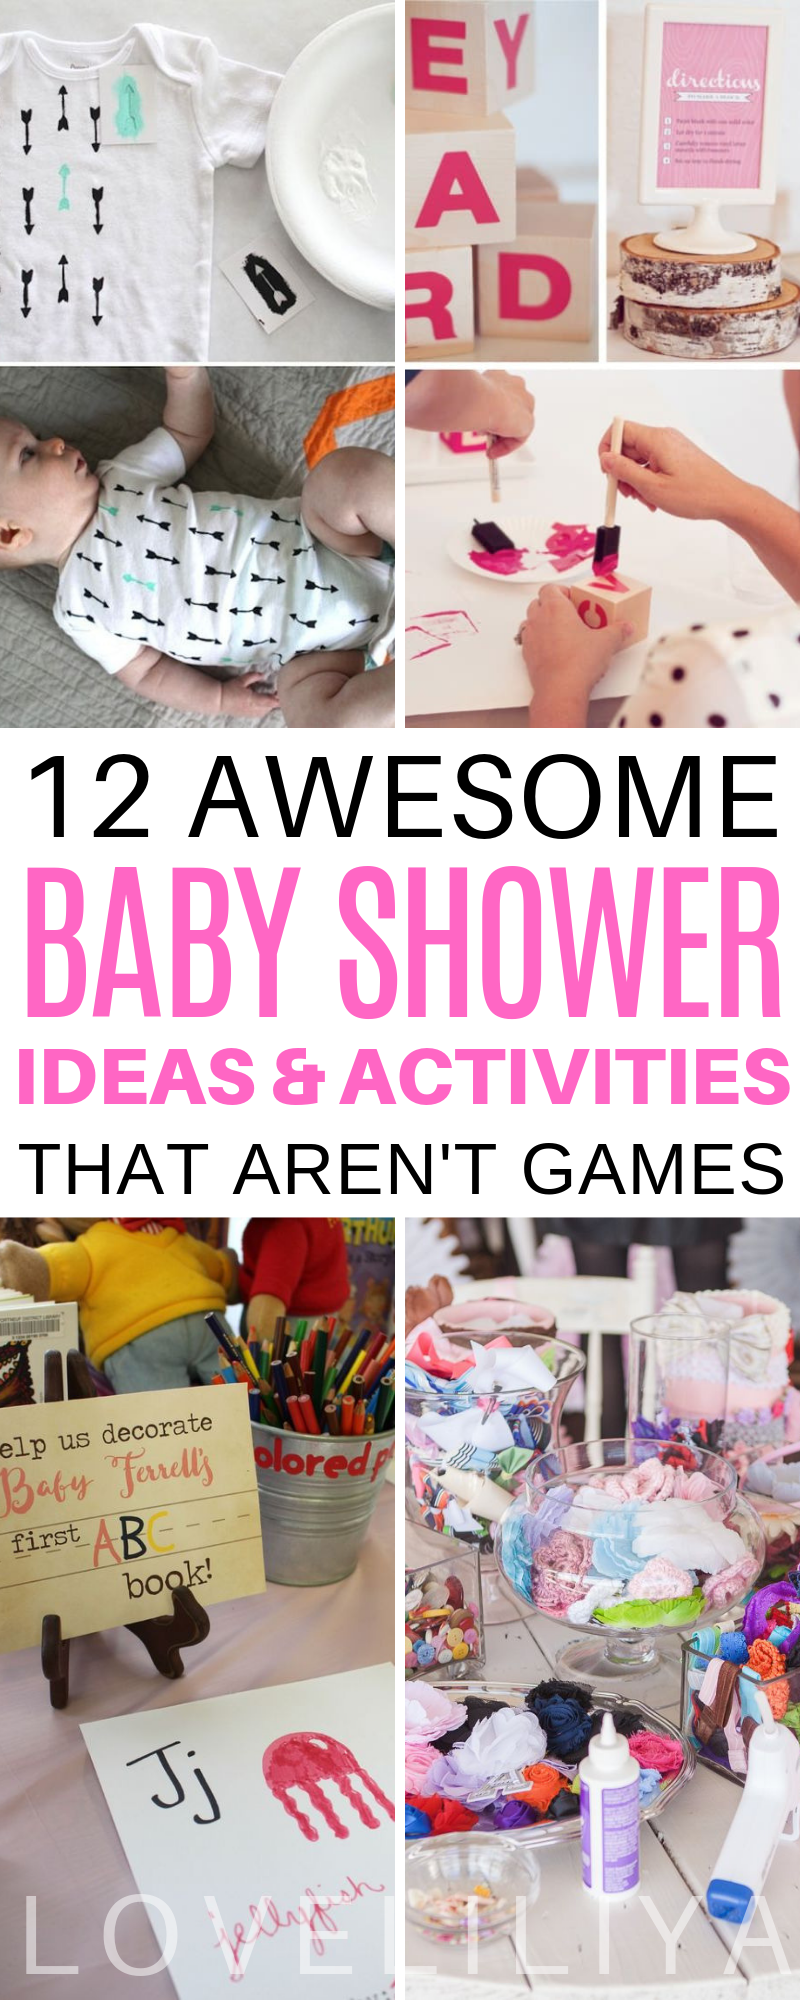 12 AWESOME BABY SHOWER IDEAS